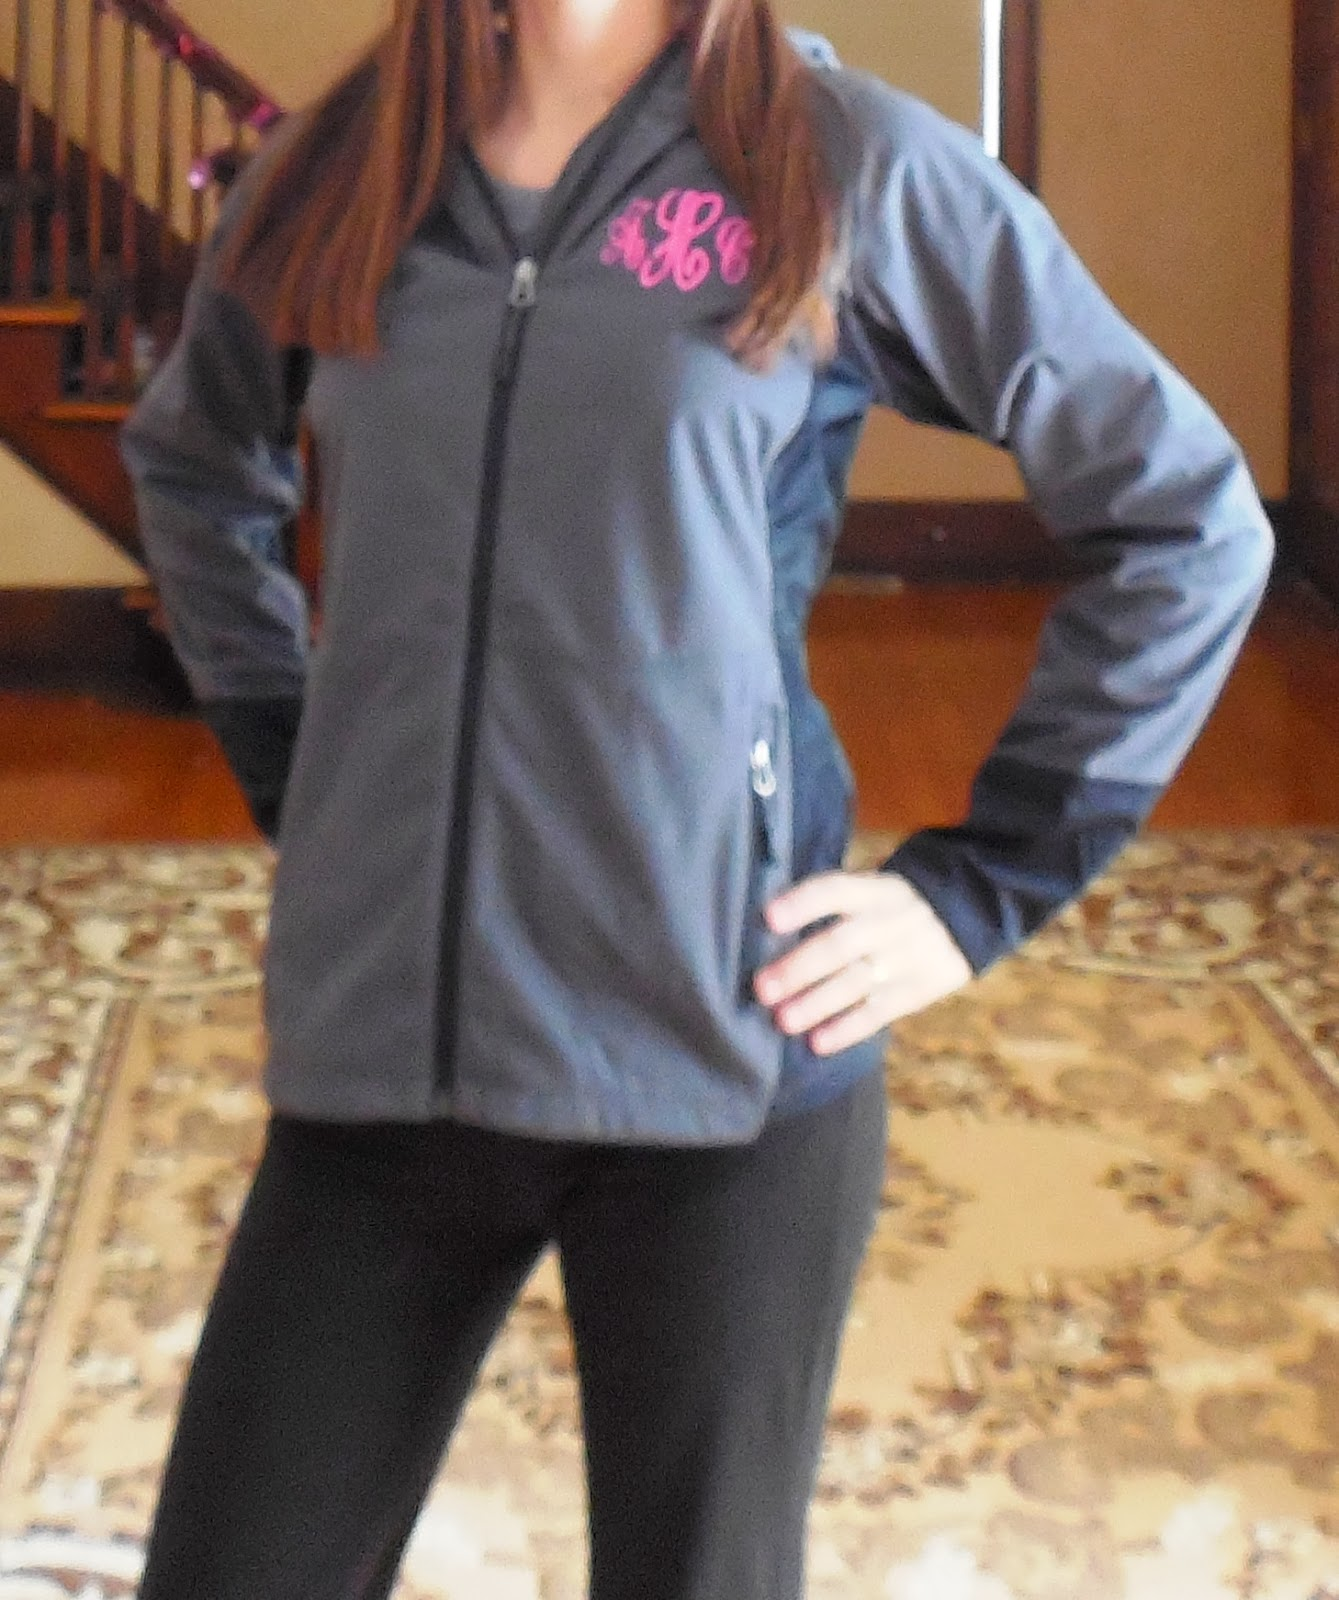 The Pink Monogram Jacket